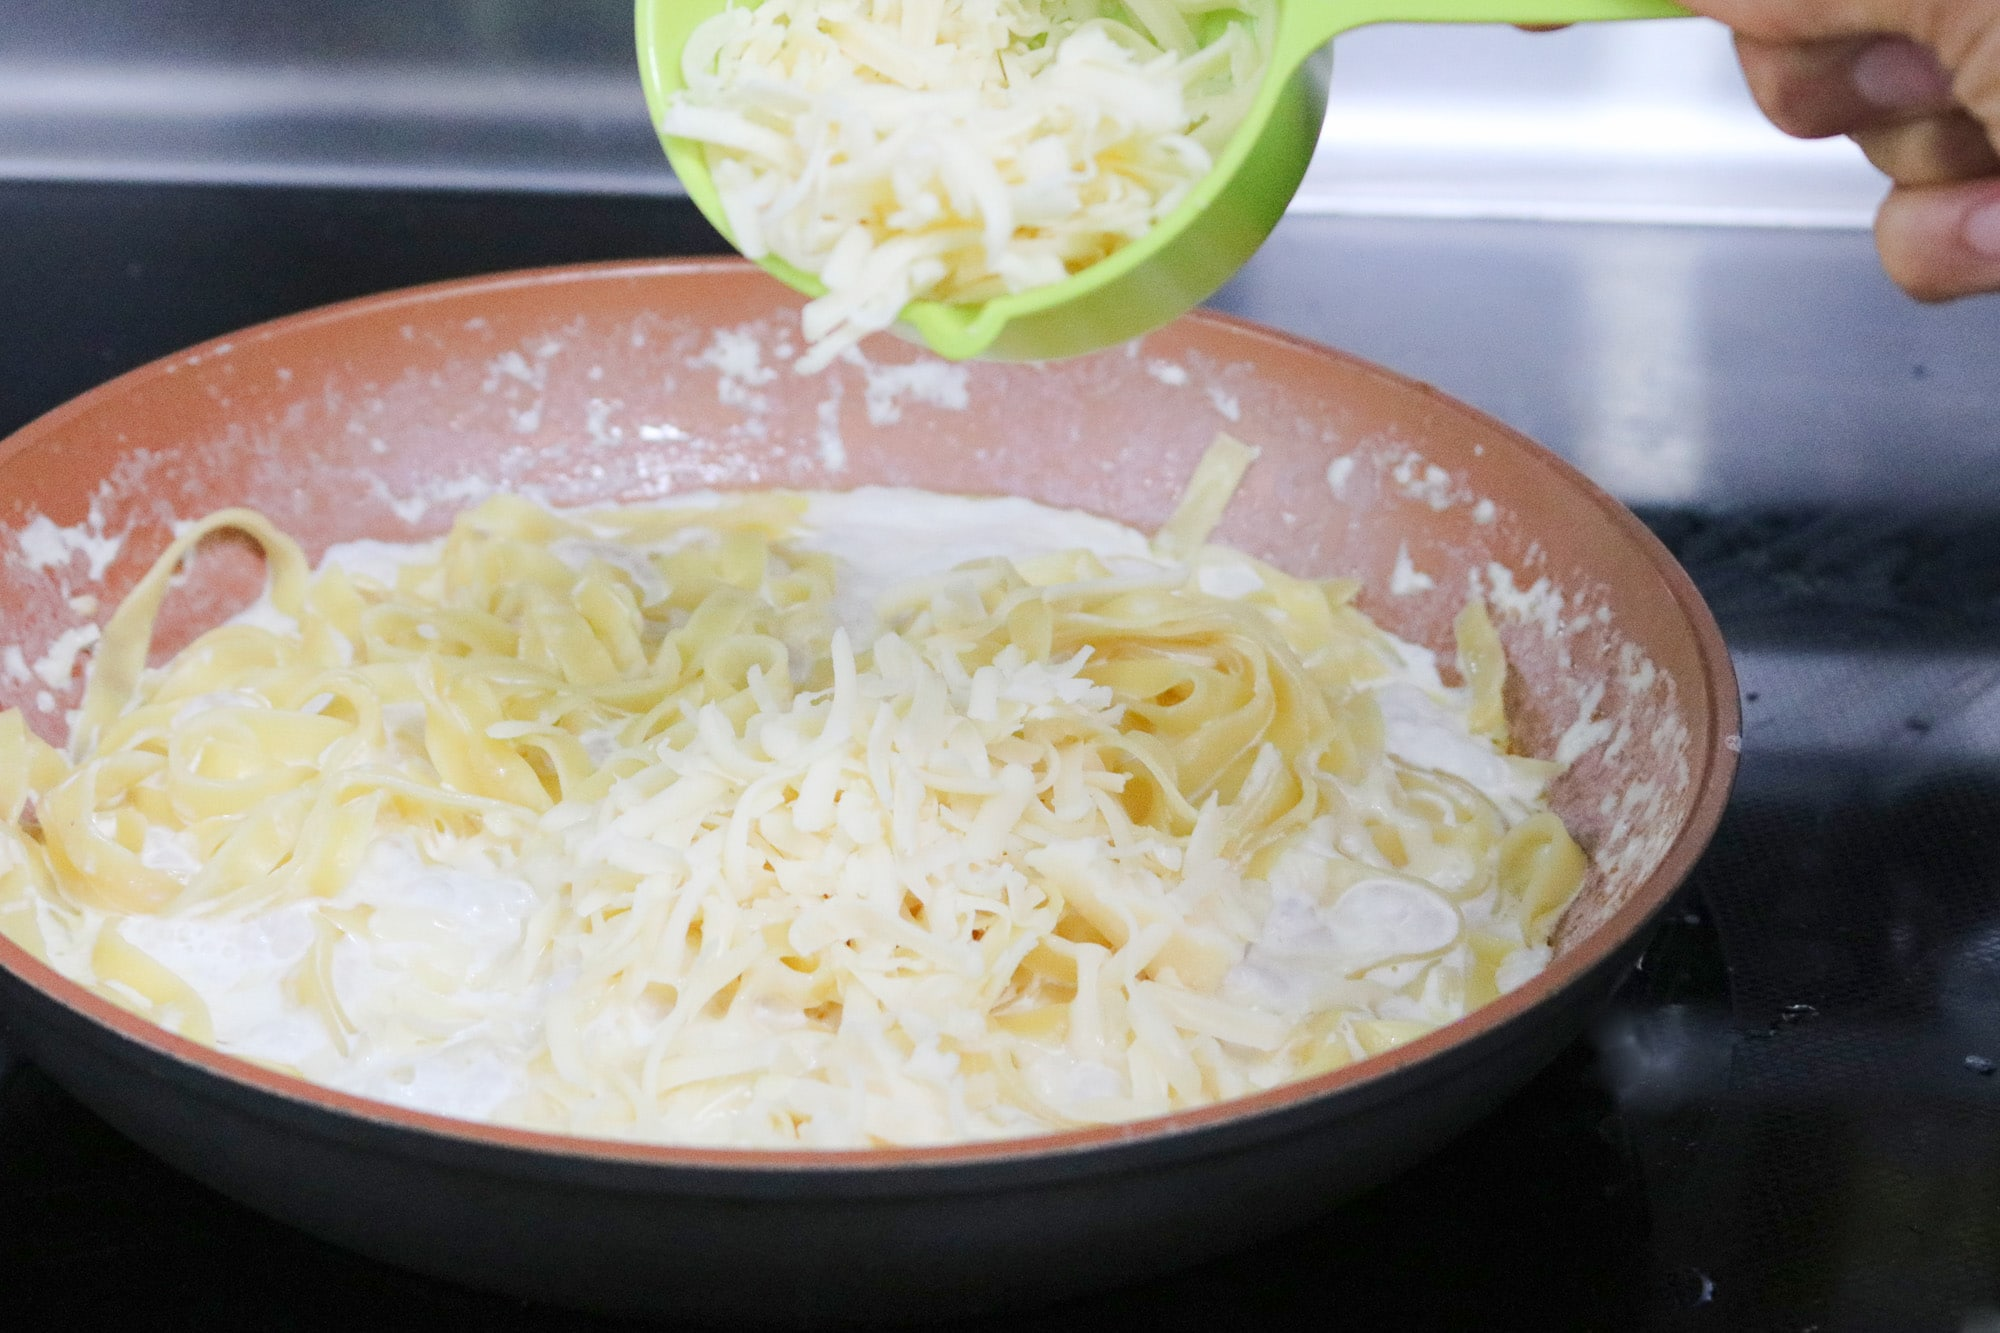 adding cheese to cream and noodles in saucepan